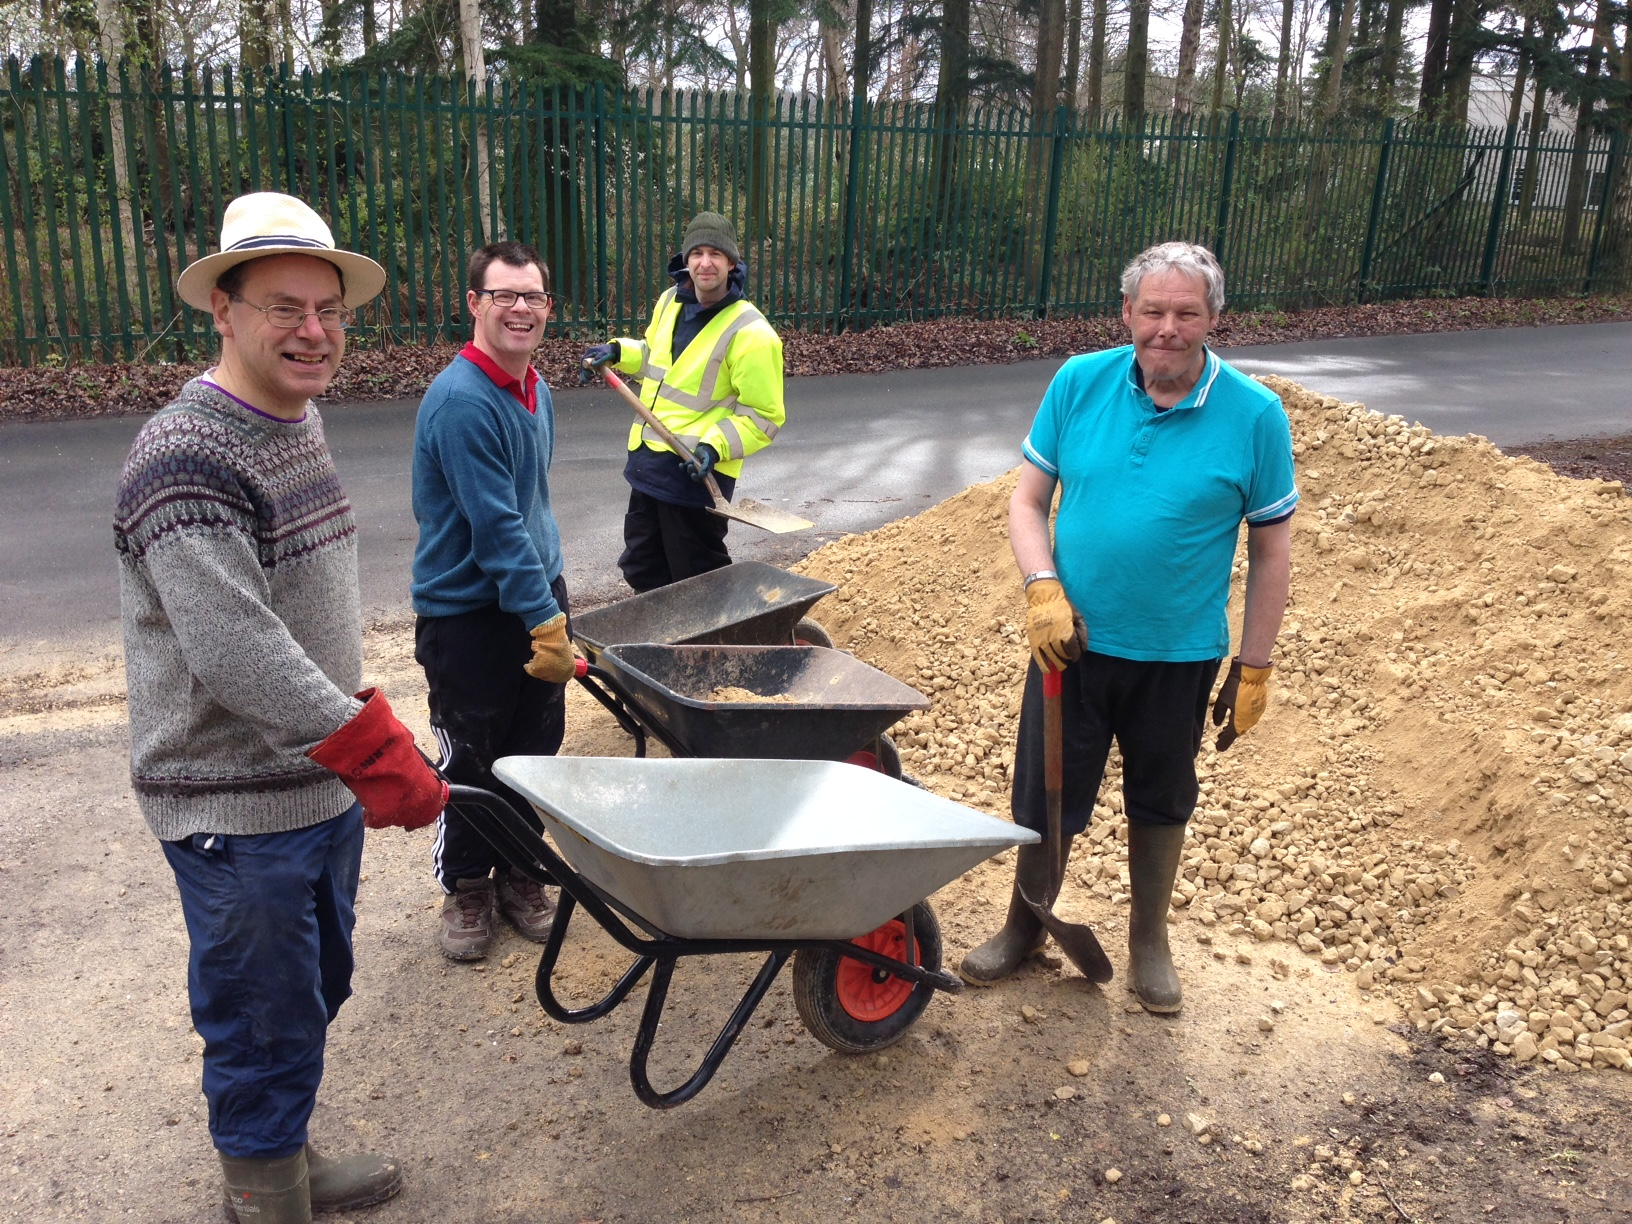 The group doing path work, standing next to wheelbarrows with shovels